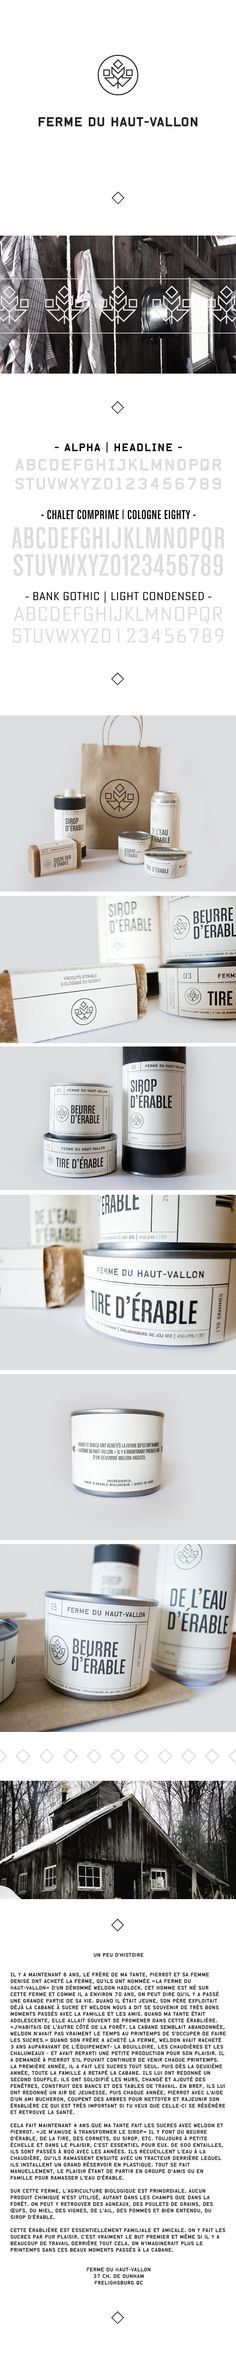 Ferme du Haut-Vallon by Eliane Cadieux, via Behance